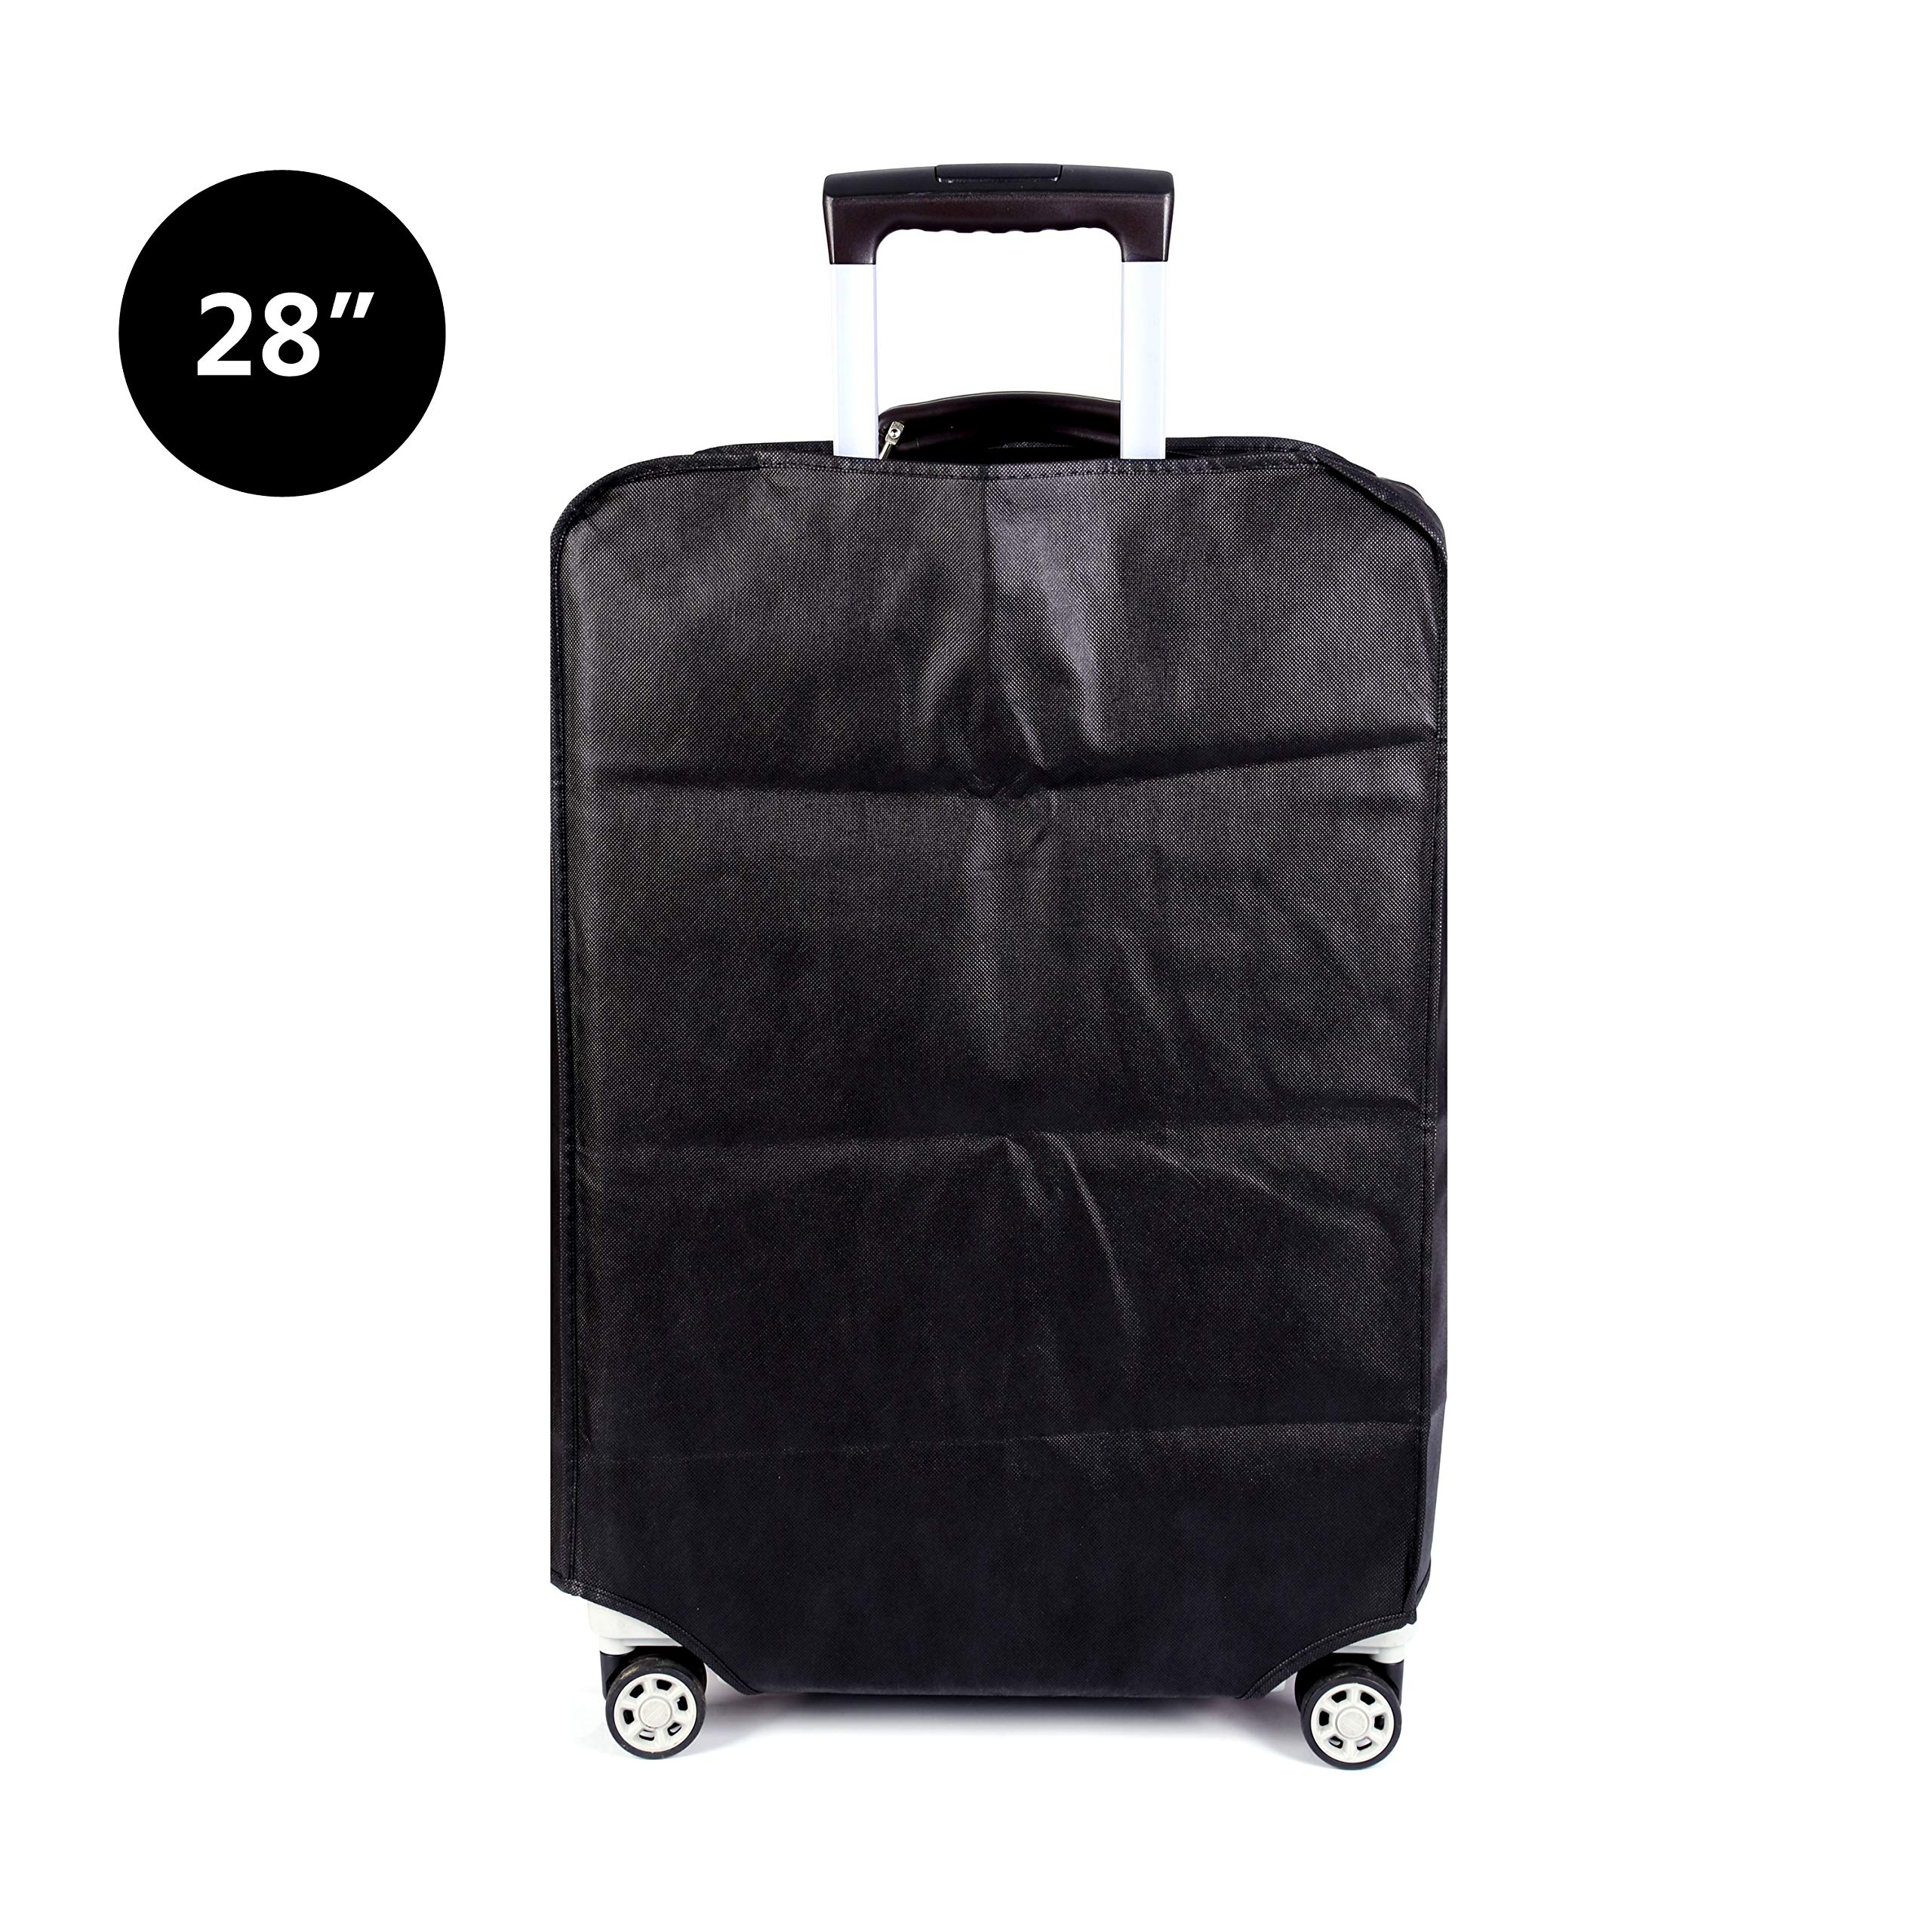 Travel Luggage Cover Plain Color Suitcase Cover,3 Colors,Fits 28 Inch,Black by CXGIAE (Image #3)